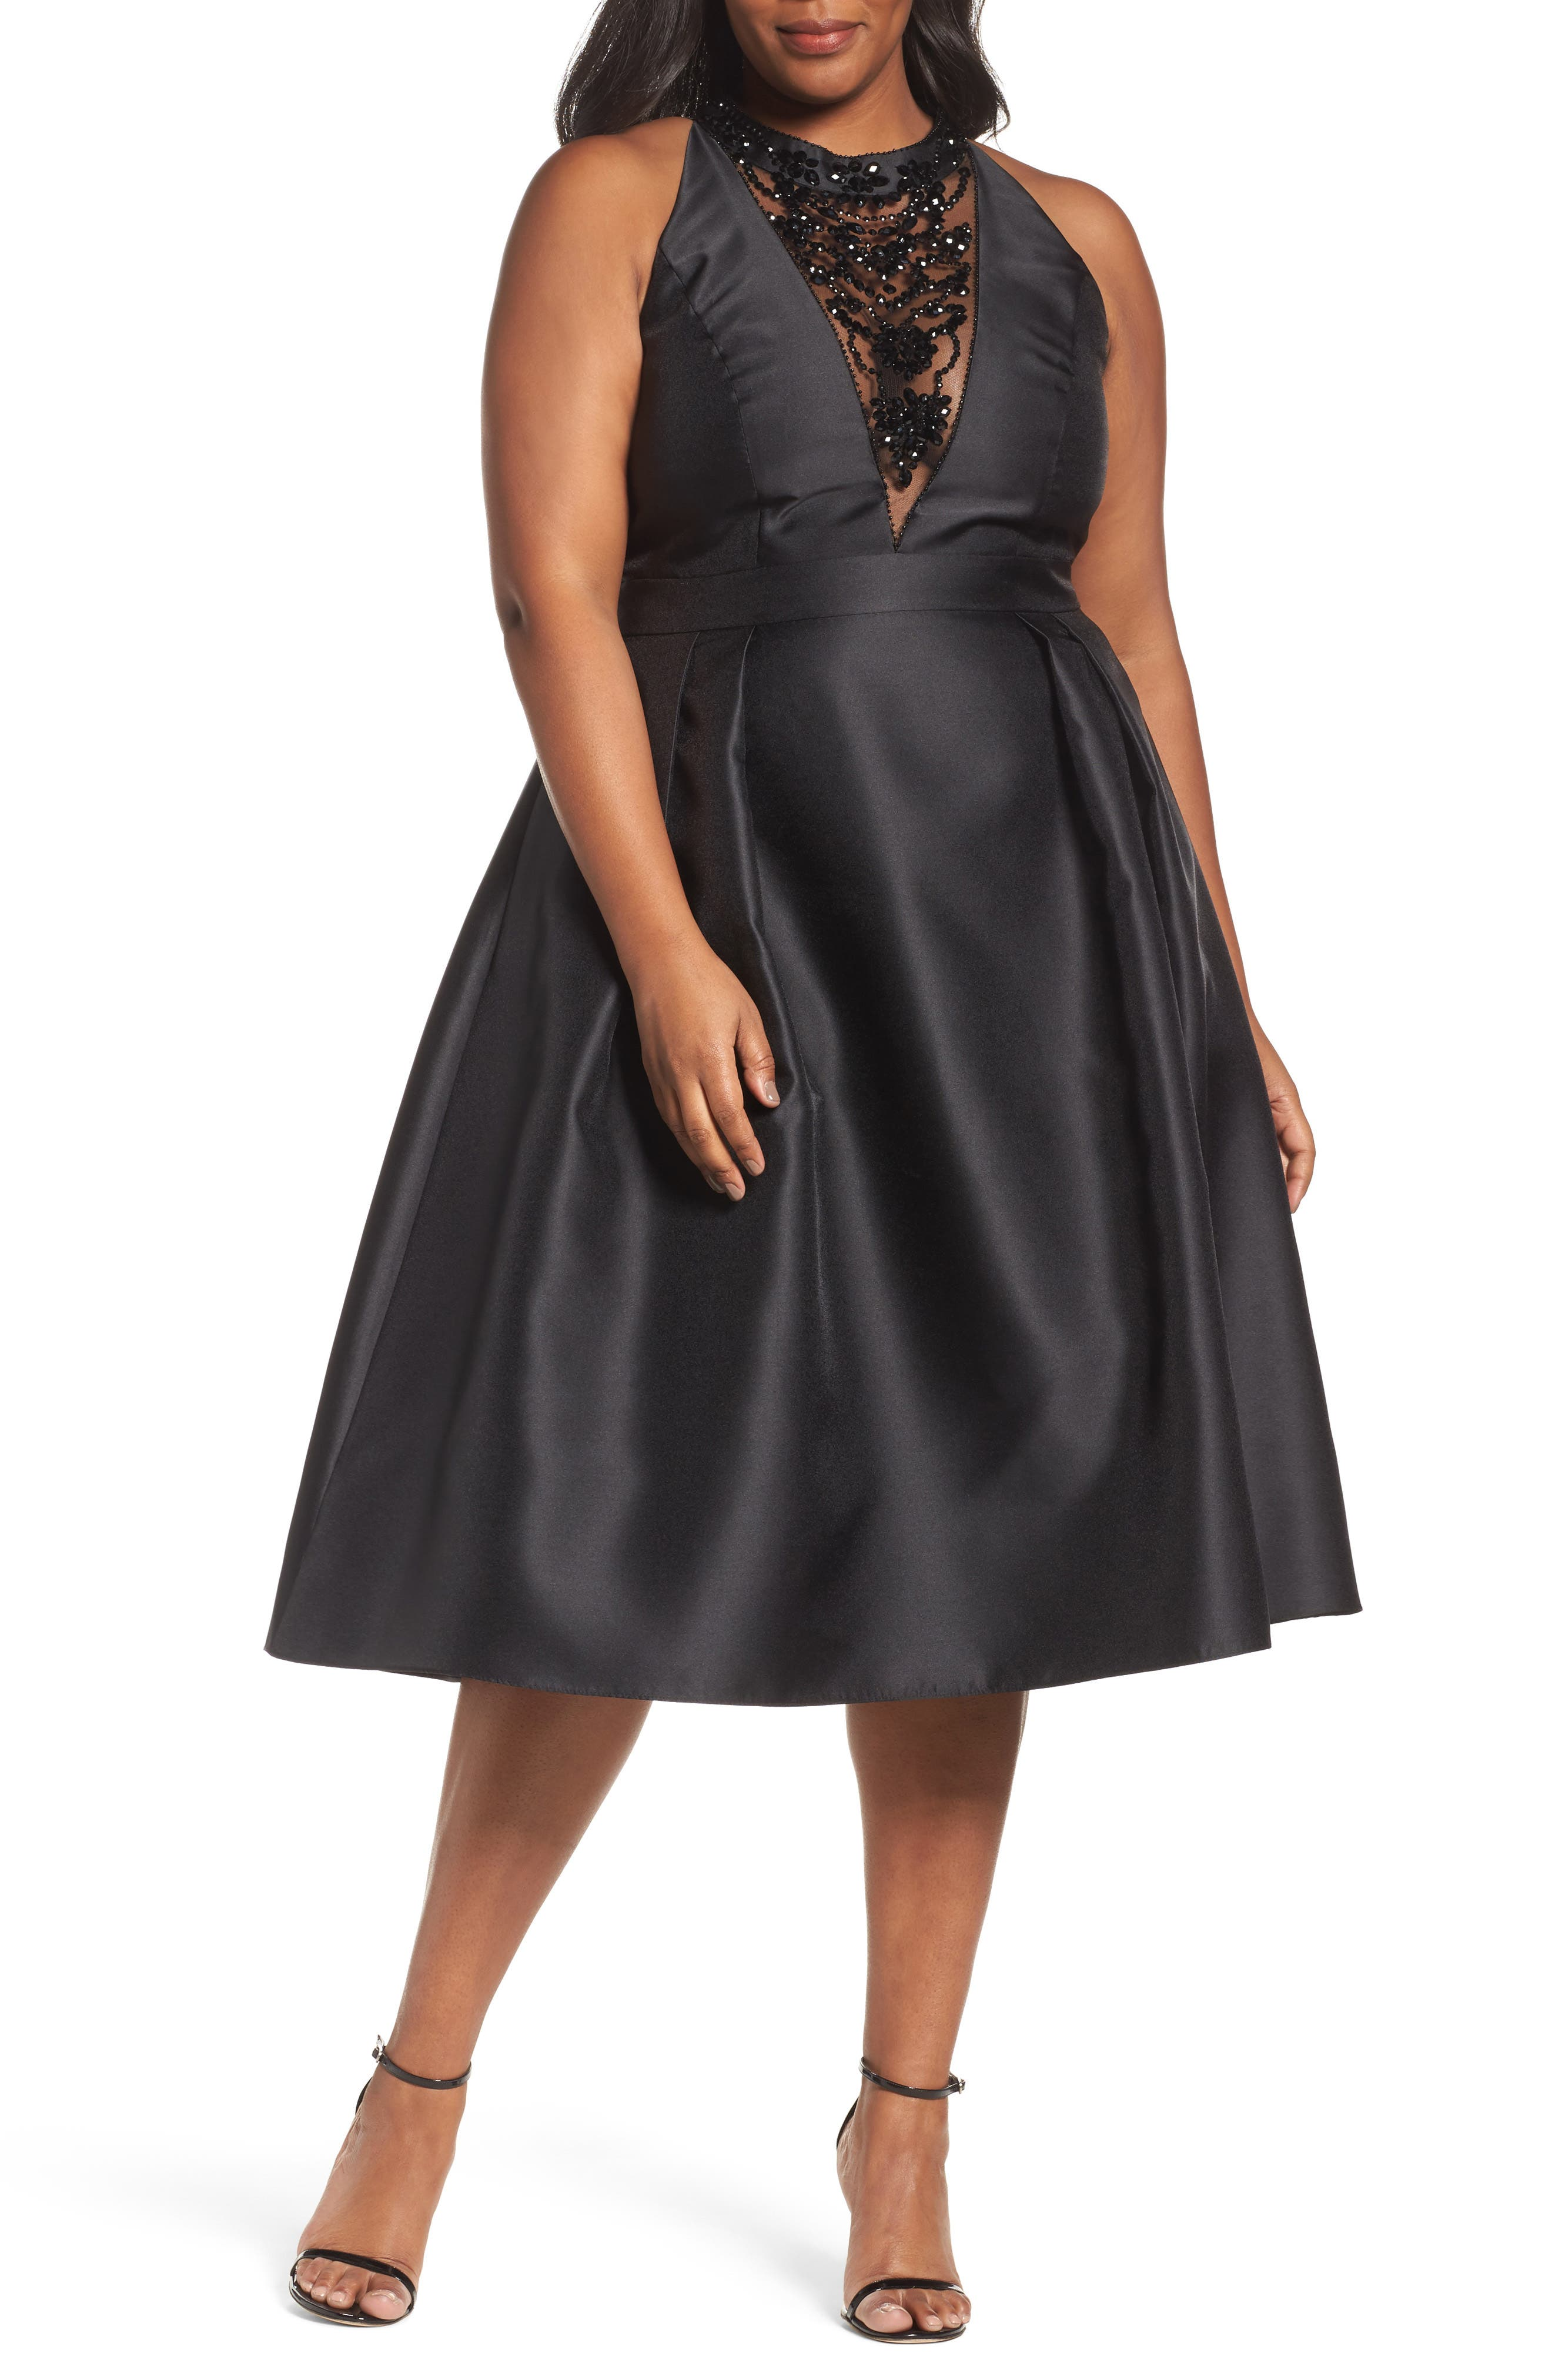 Adriana Papell Beaded Fit & Flare Dress,                             Main thumbnail 1, color,                             002